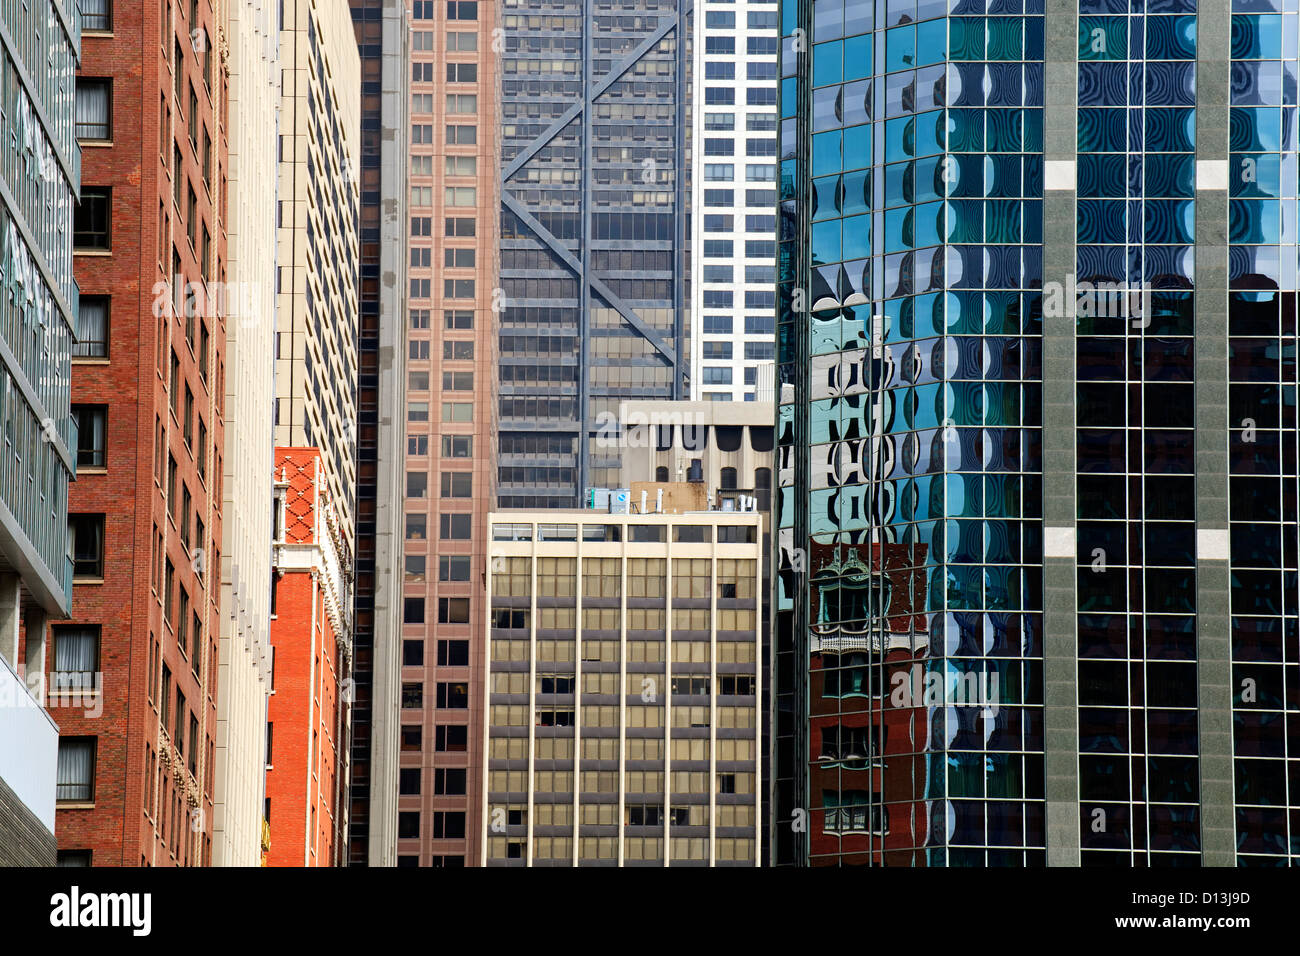 Building windows, Chicago, Illinois USA - Stock Image